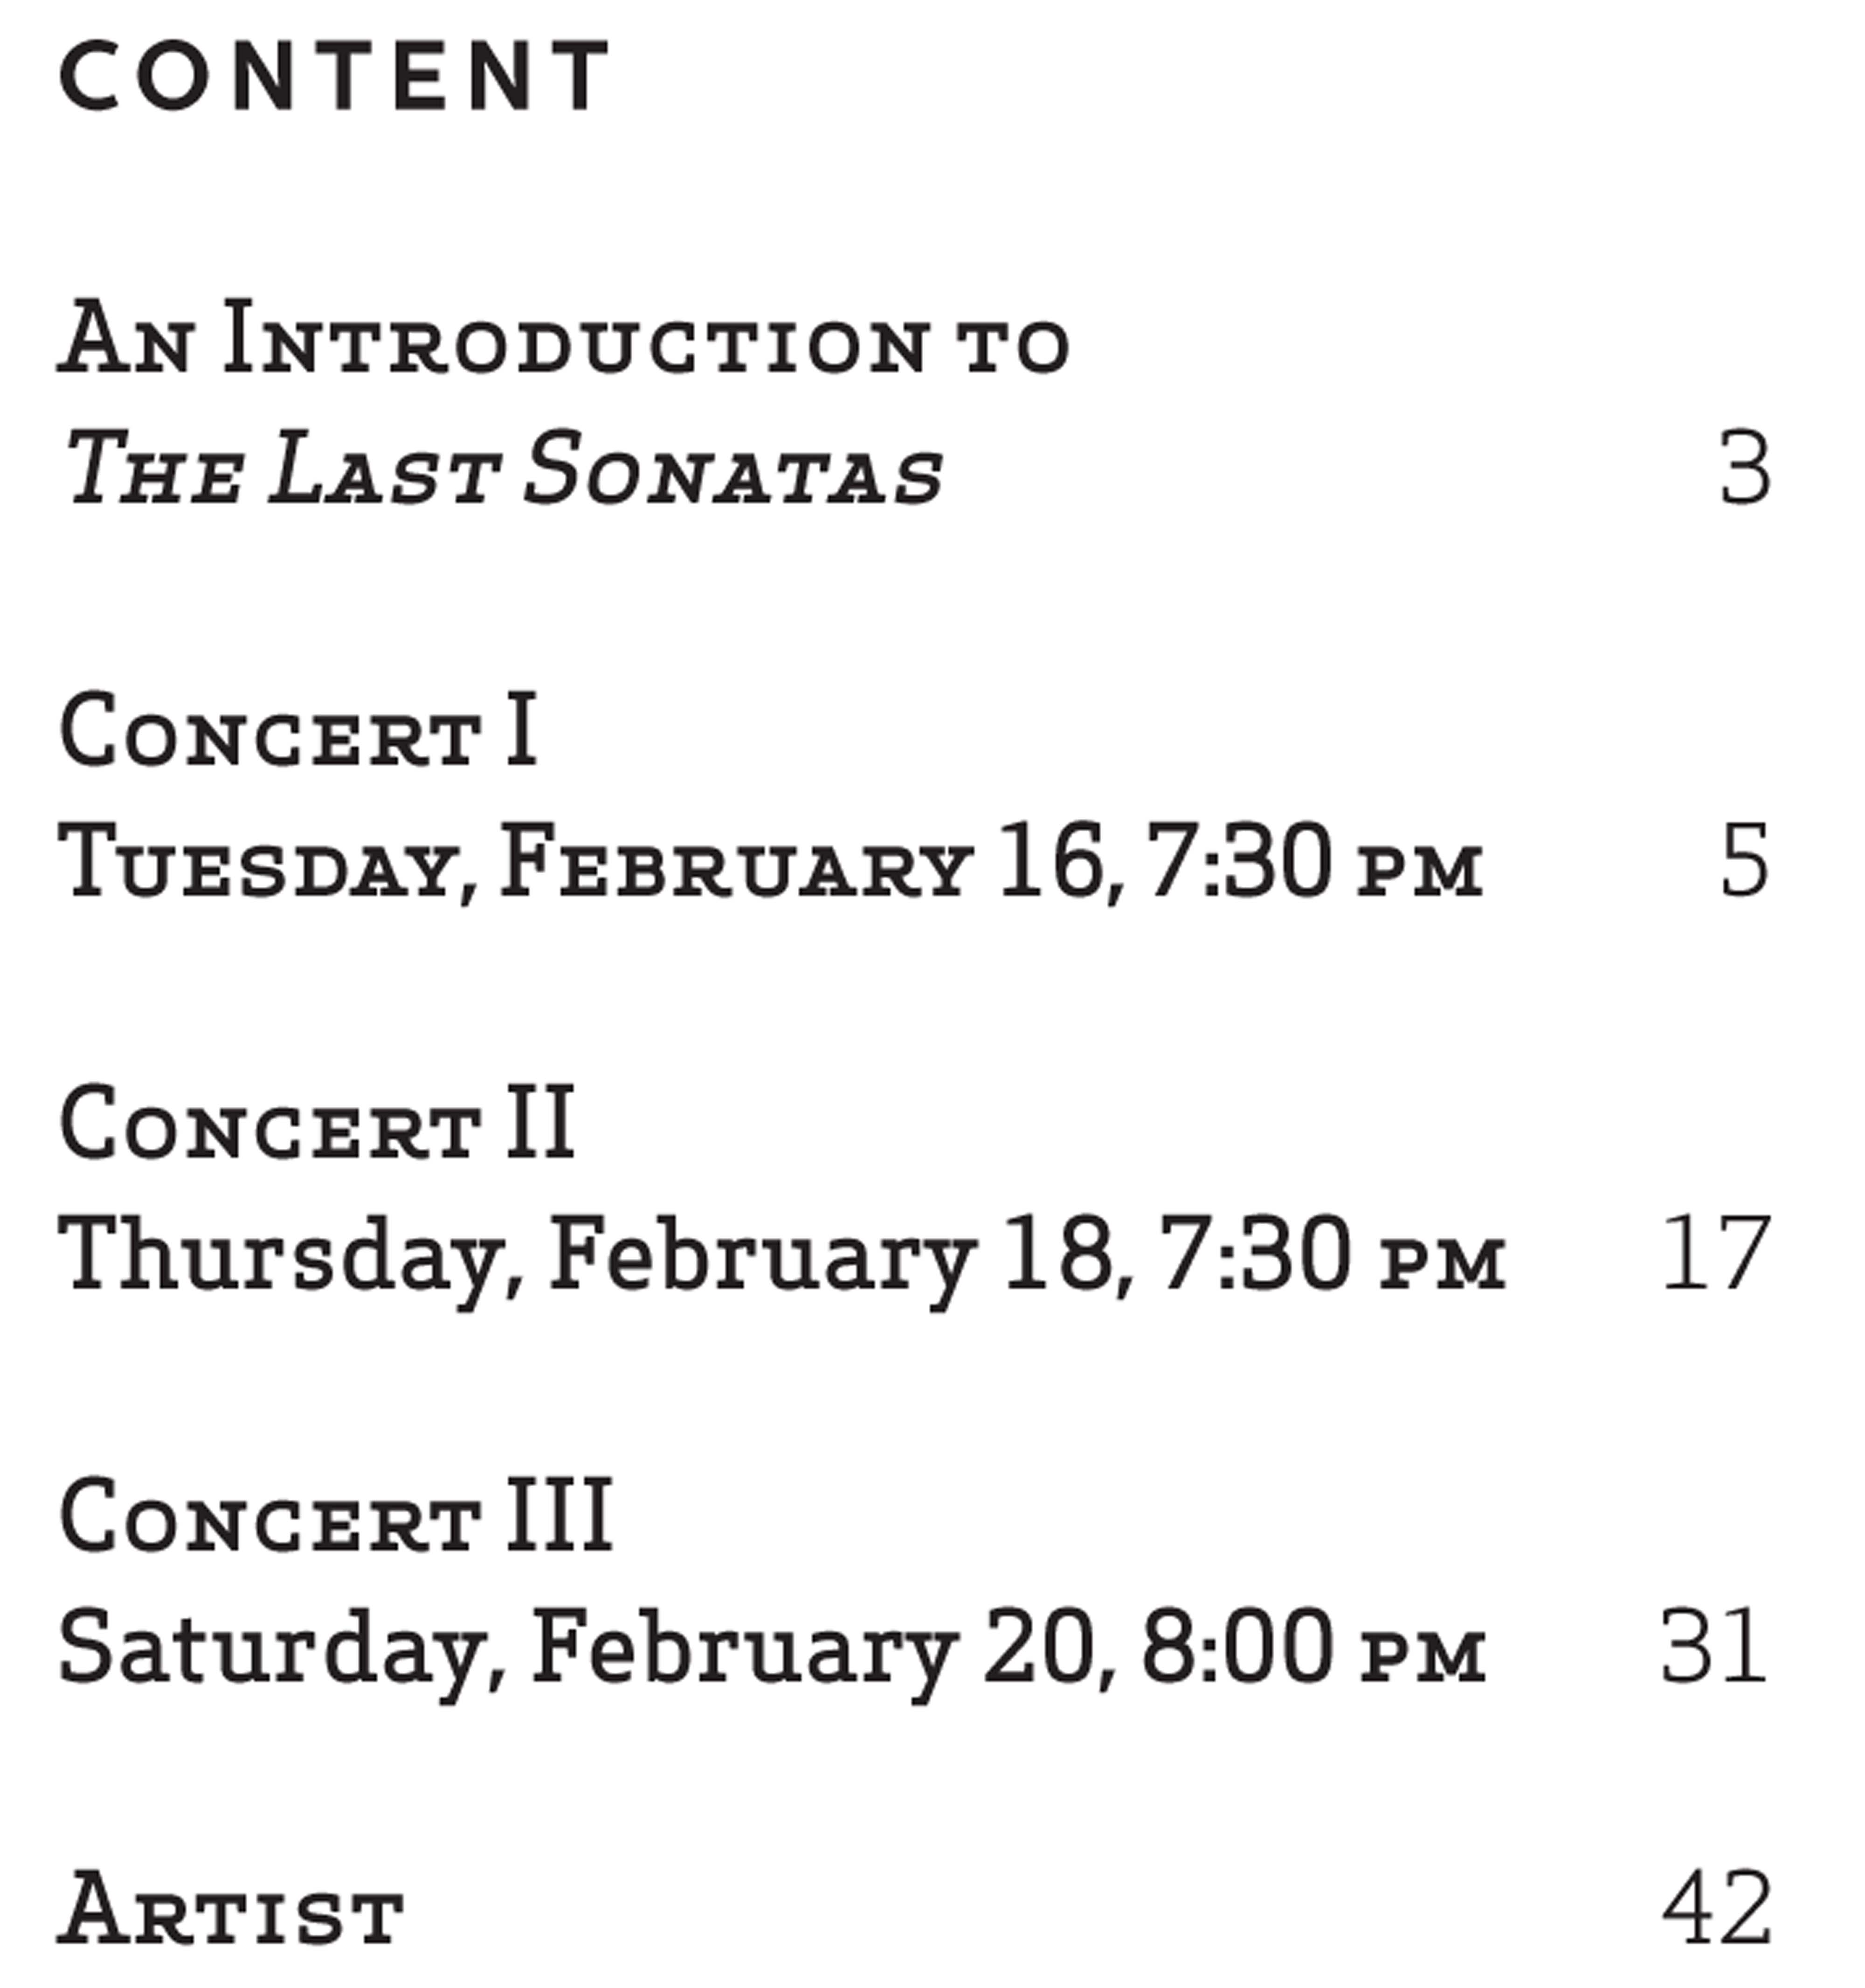 UMS Concert Program, February 16-18, 2016 - Sir András Schiff The Last Sonatas image